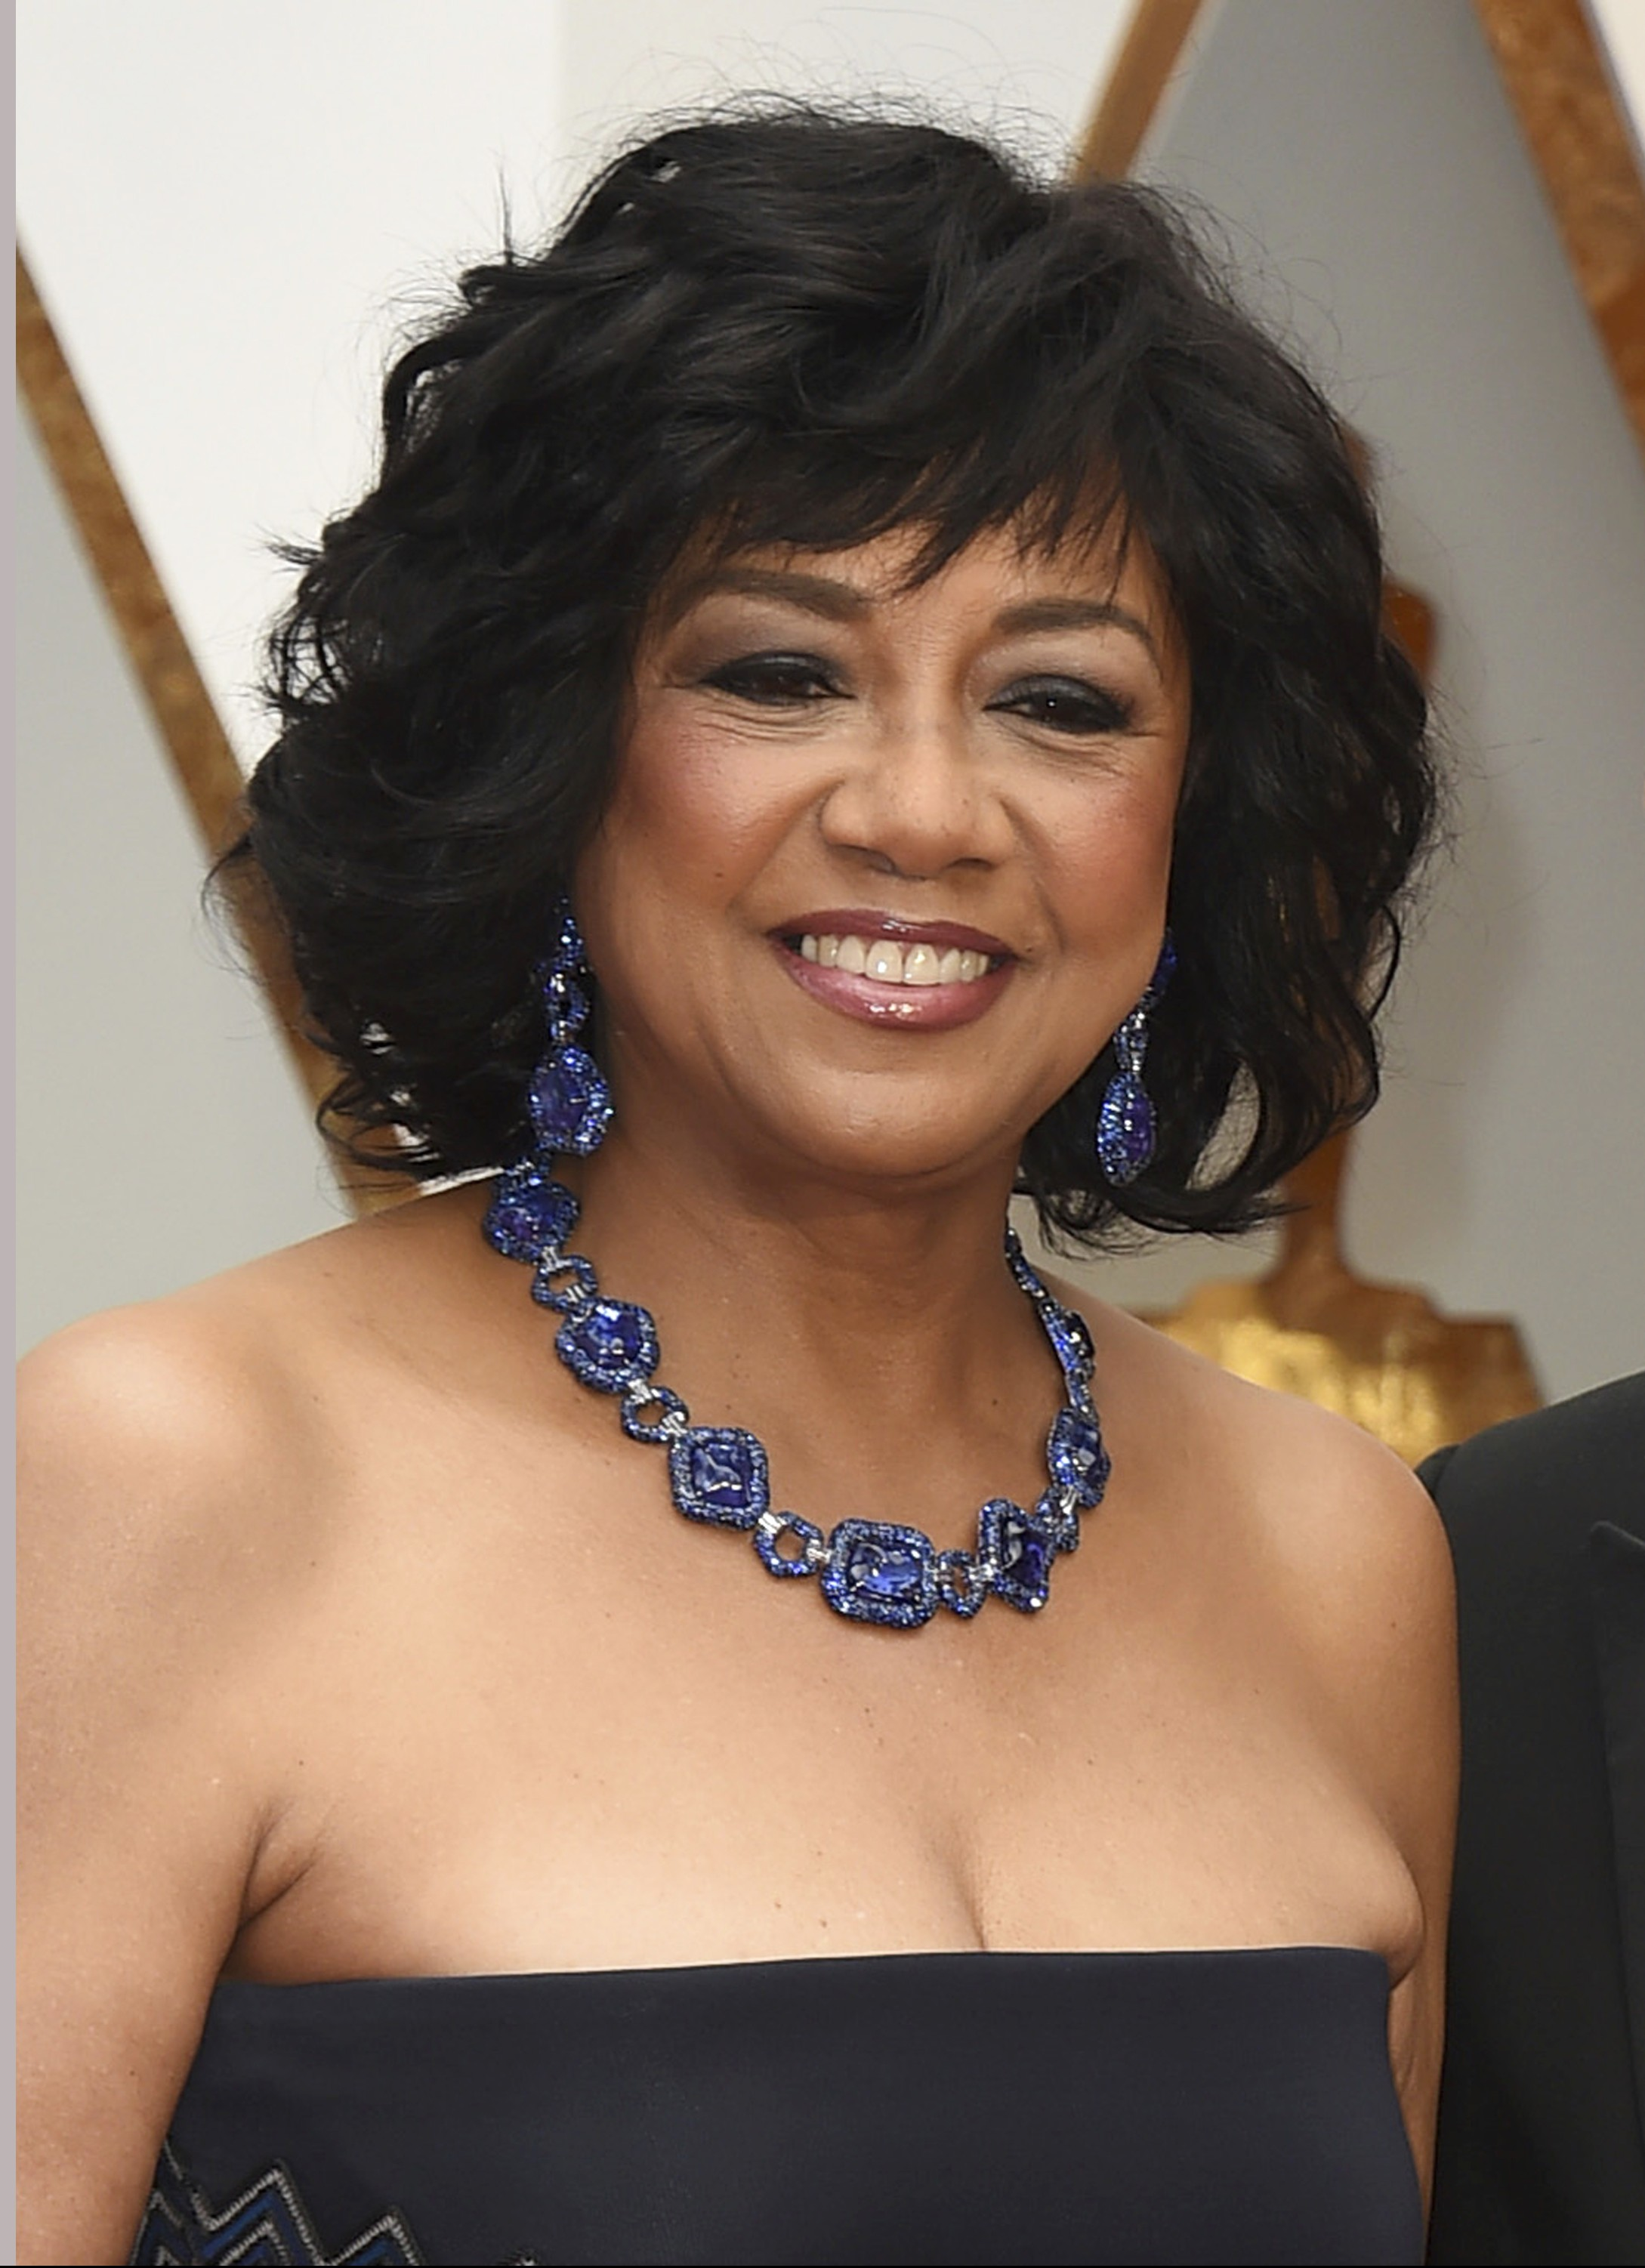 Cheryl Boone Isaacs arrives at the Oscars at the Dolby Theatre in Los Angeles on Feb. 26, 2017. Jordan Strauss/Invision/AP)